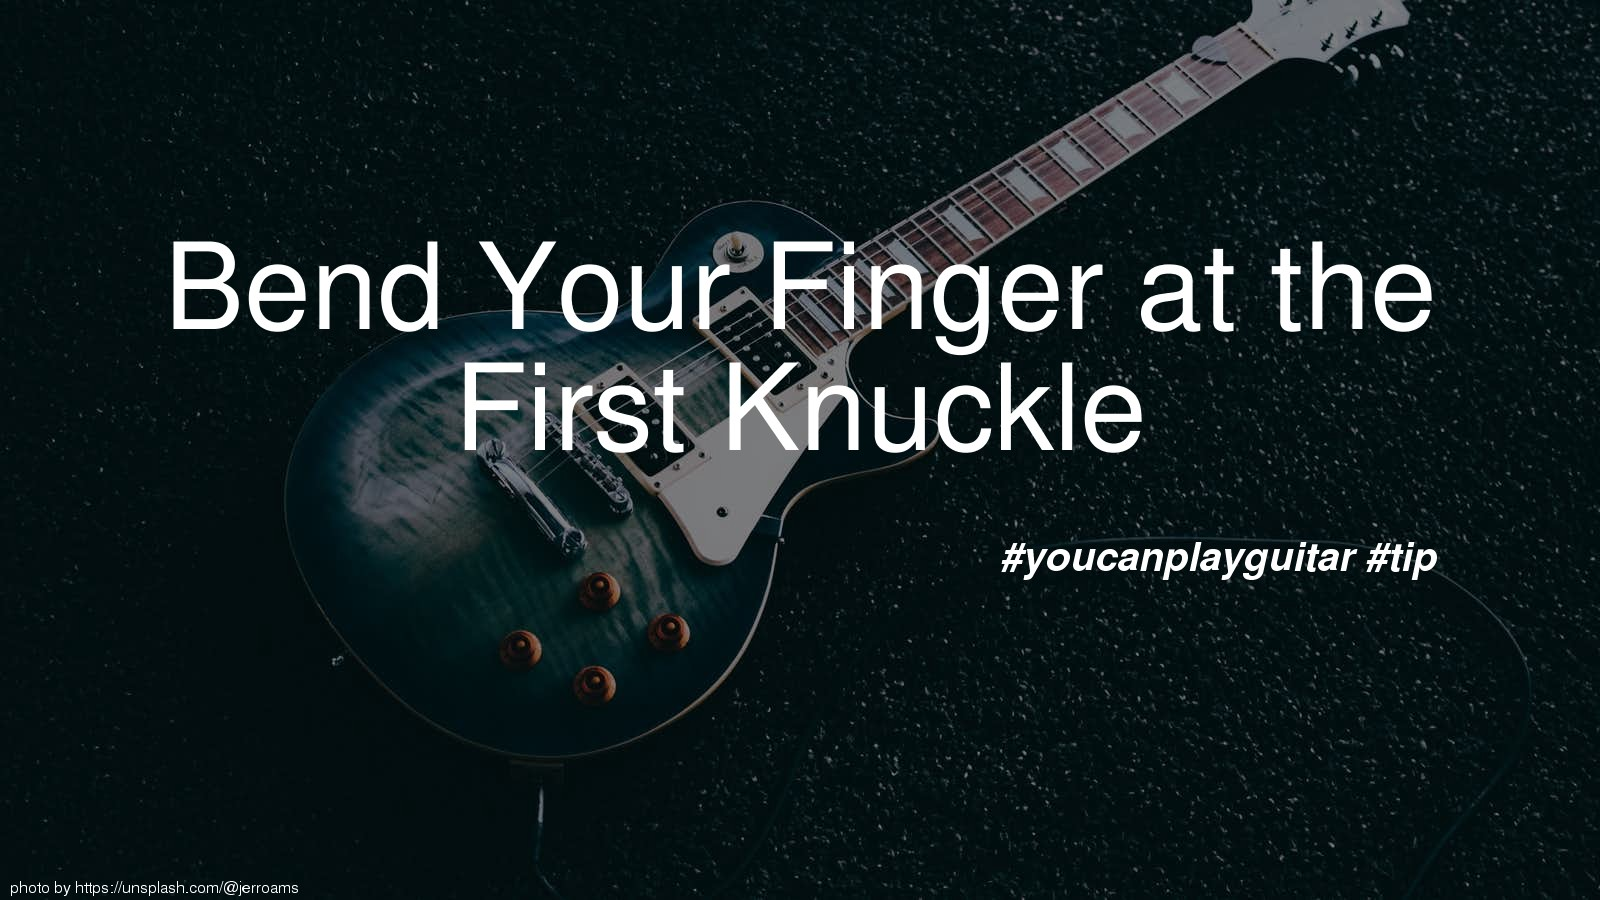 Bend Your Finger at the First Knuckle